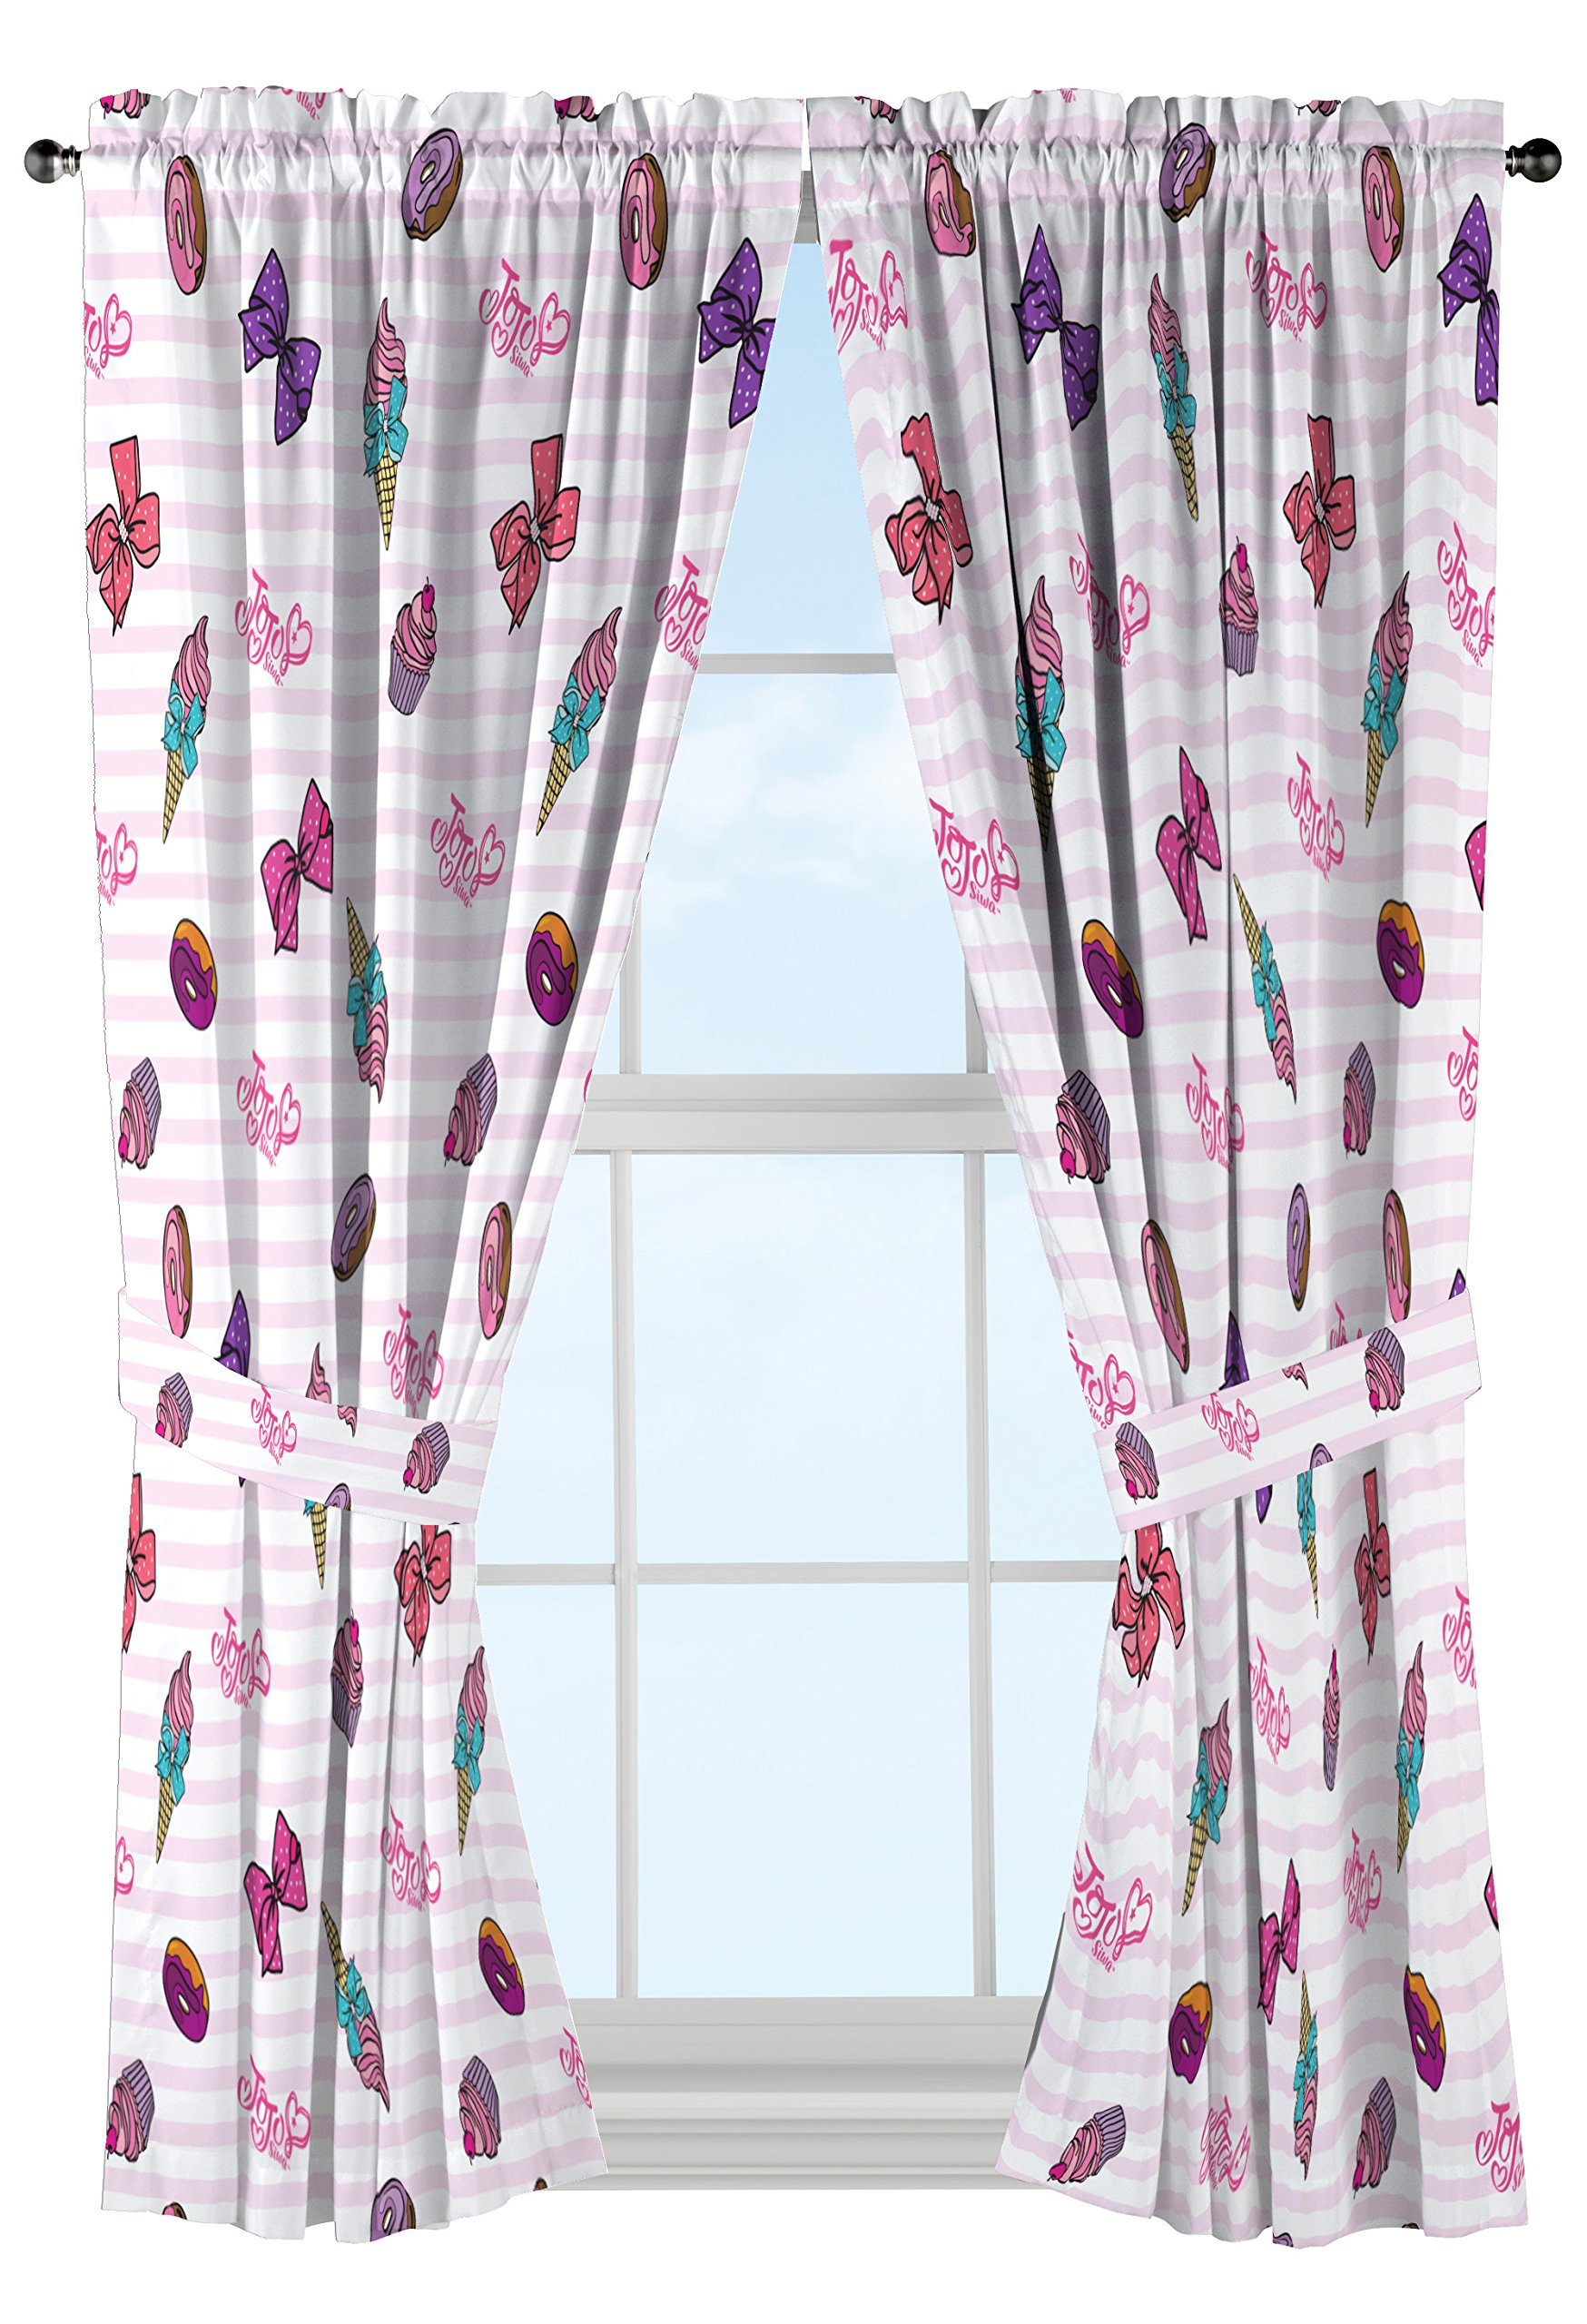 Nickelodeon JoJo Siwa Sweet Life Pink/White Curtain Set (2 Panels, 2 Tiebacks), Sweet Drapes, 4 Piece